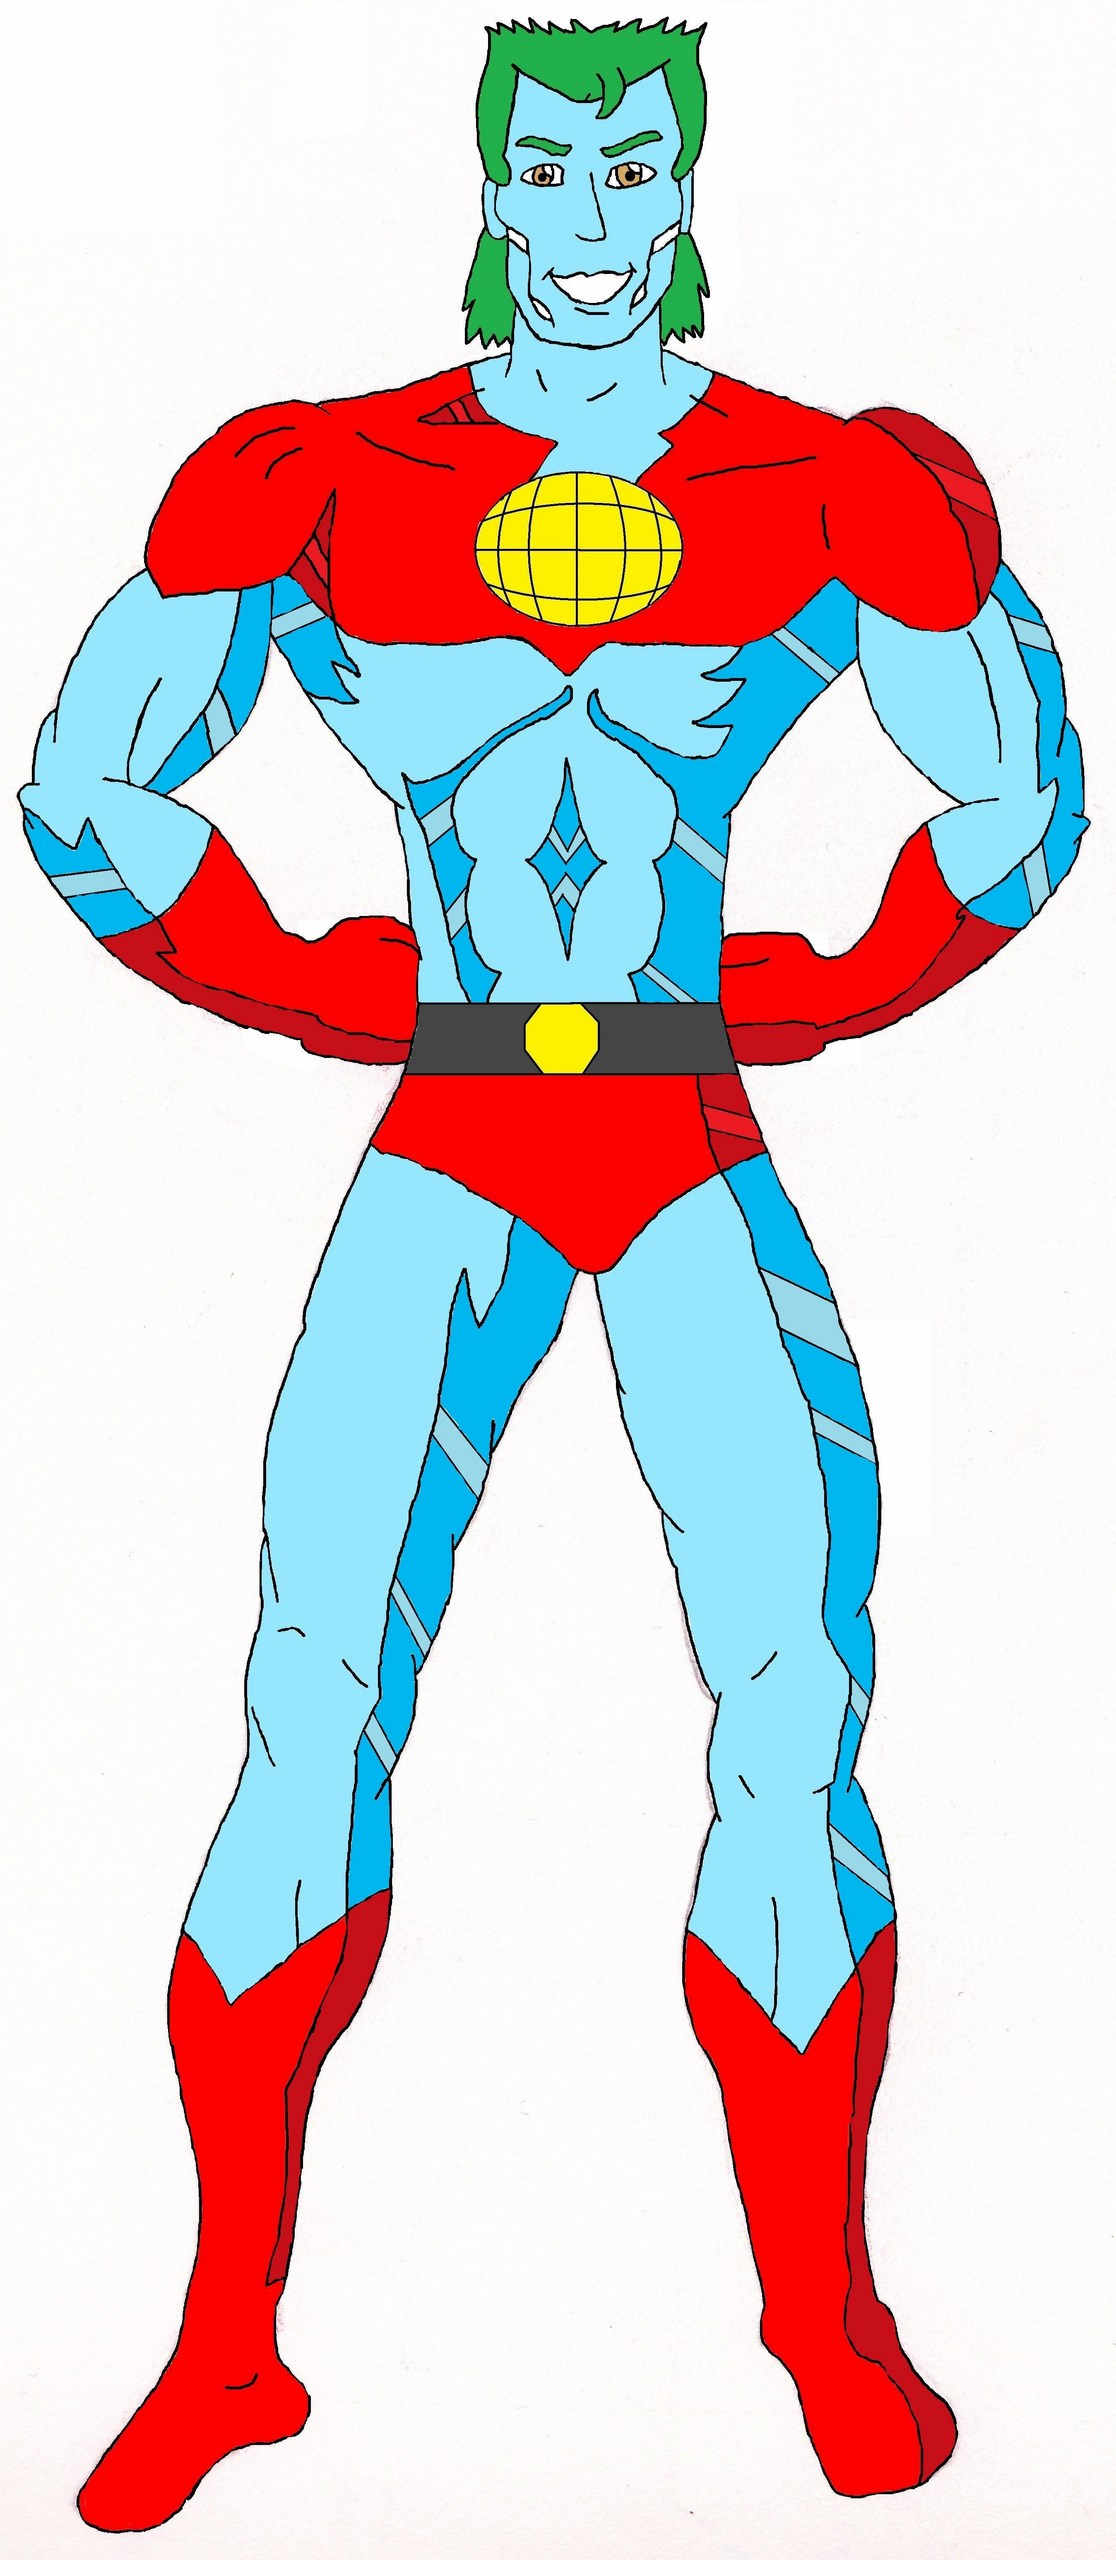 Eastern daylight time, captain planet image gallery.